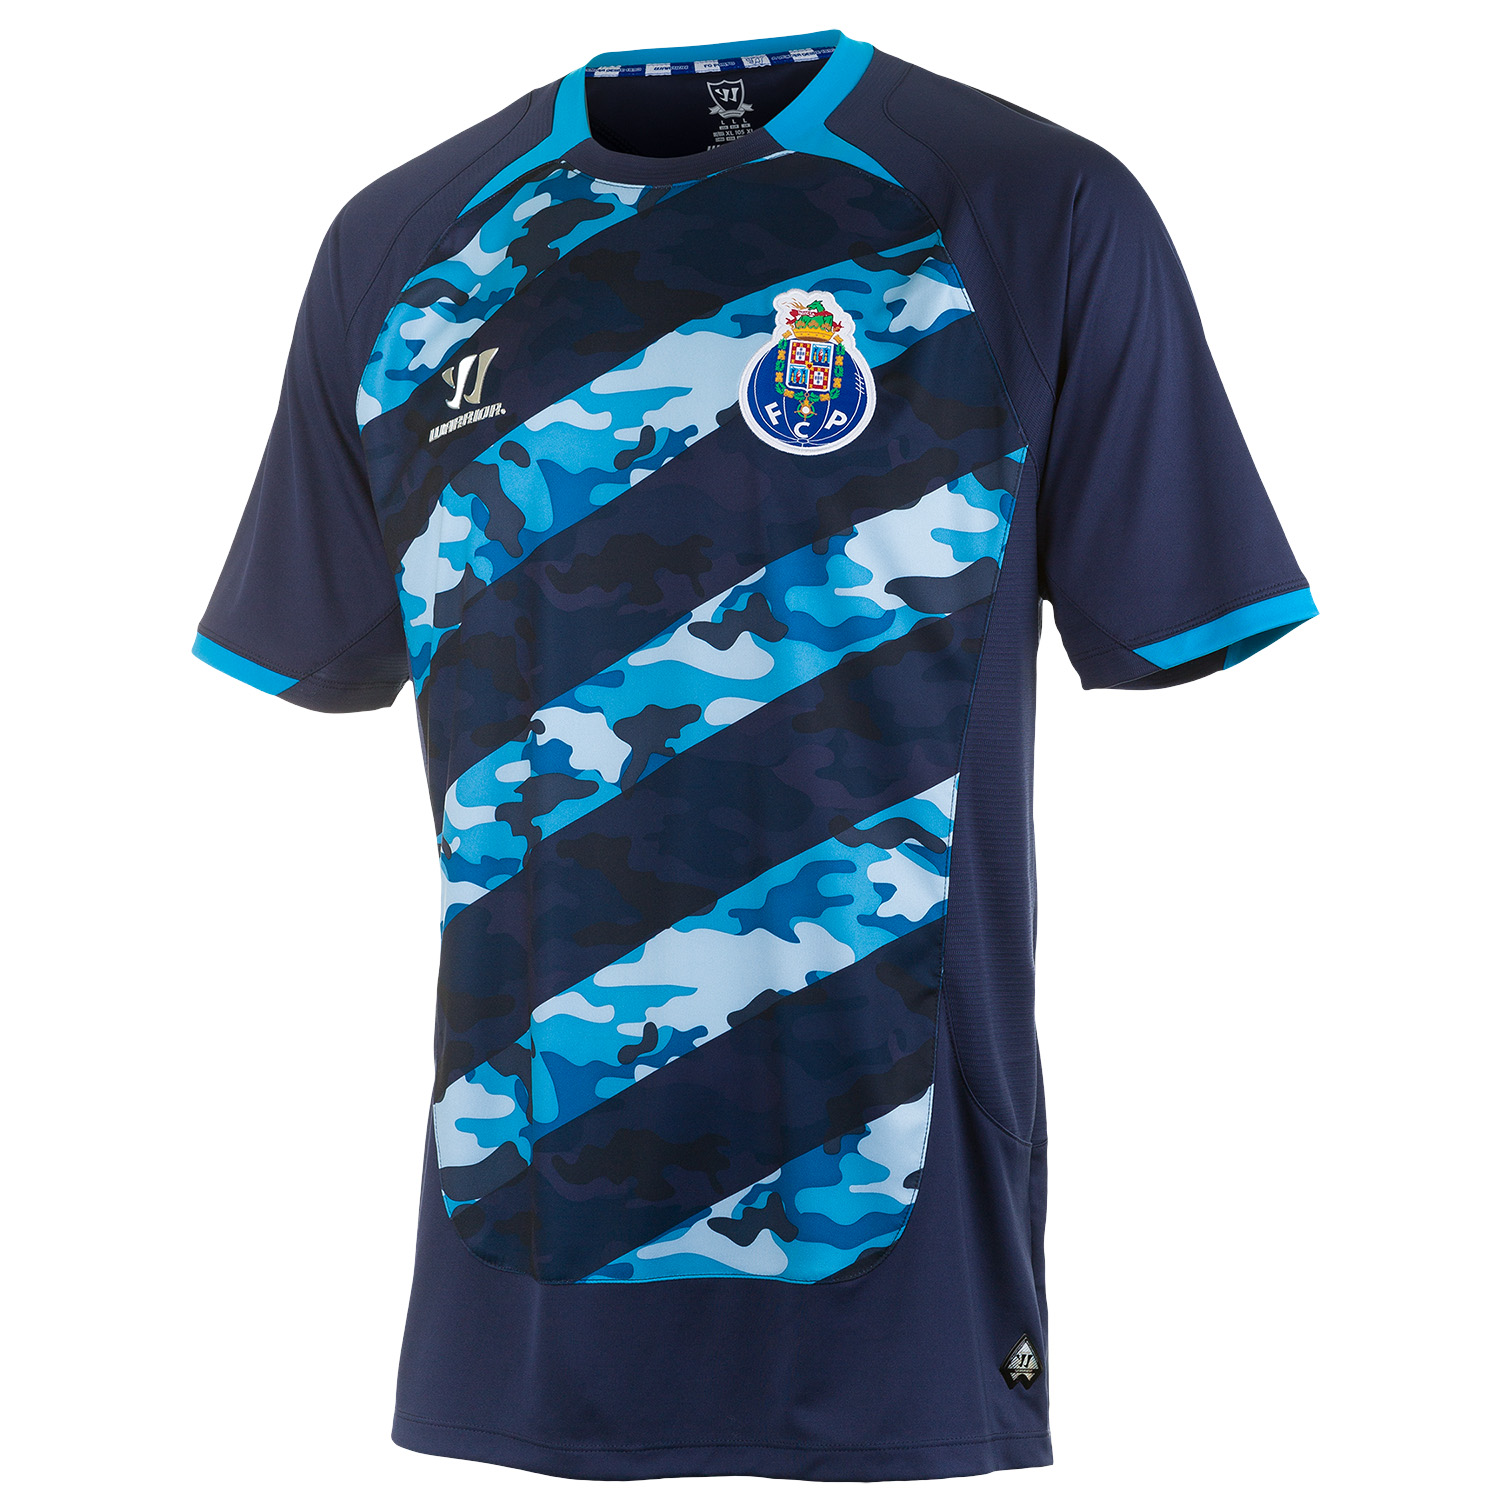 FC PORTO Away Shirt 2014/15 Blue